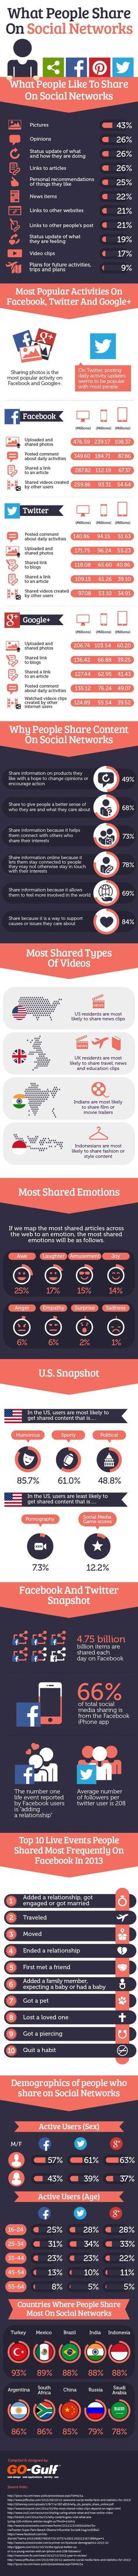 What People Share On Social Networks   #infographic #SocialMedia